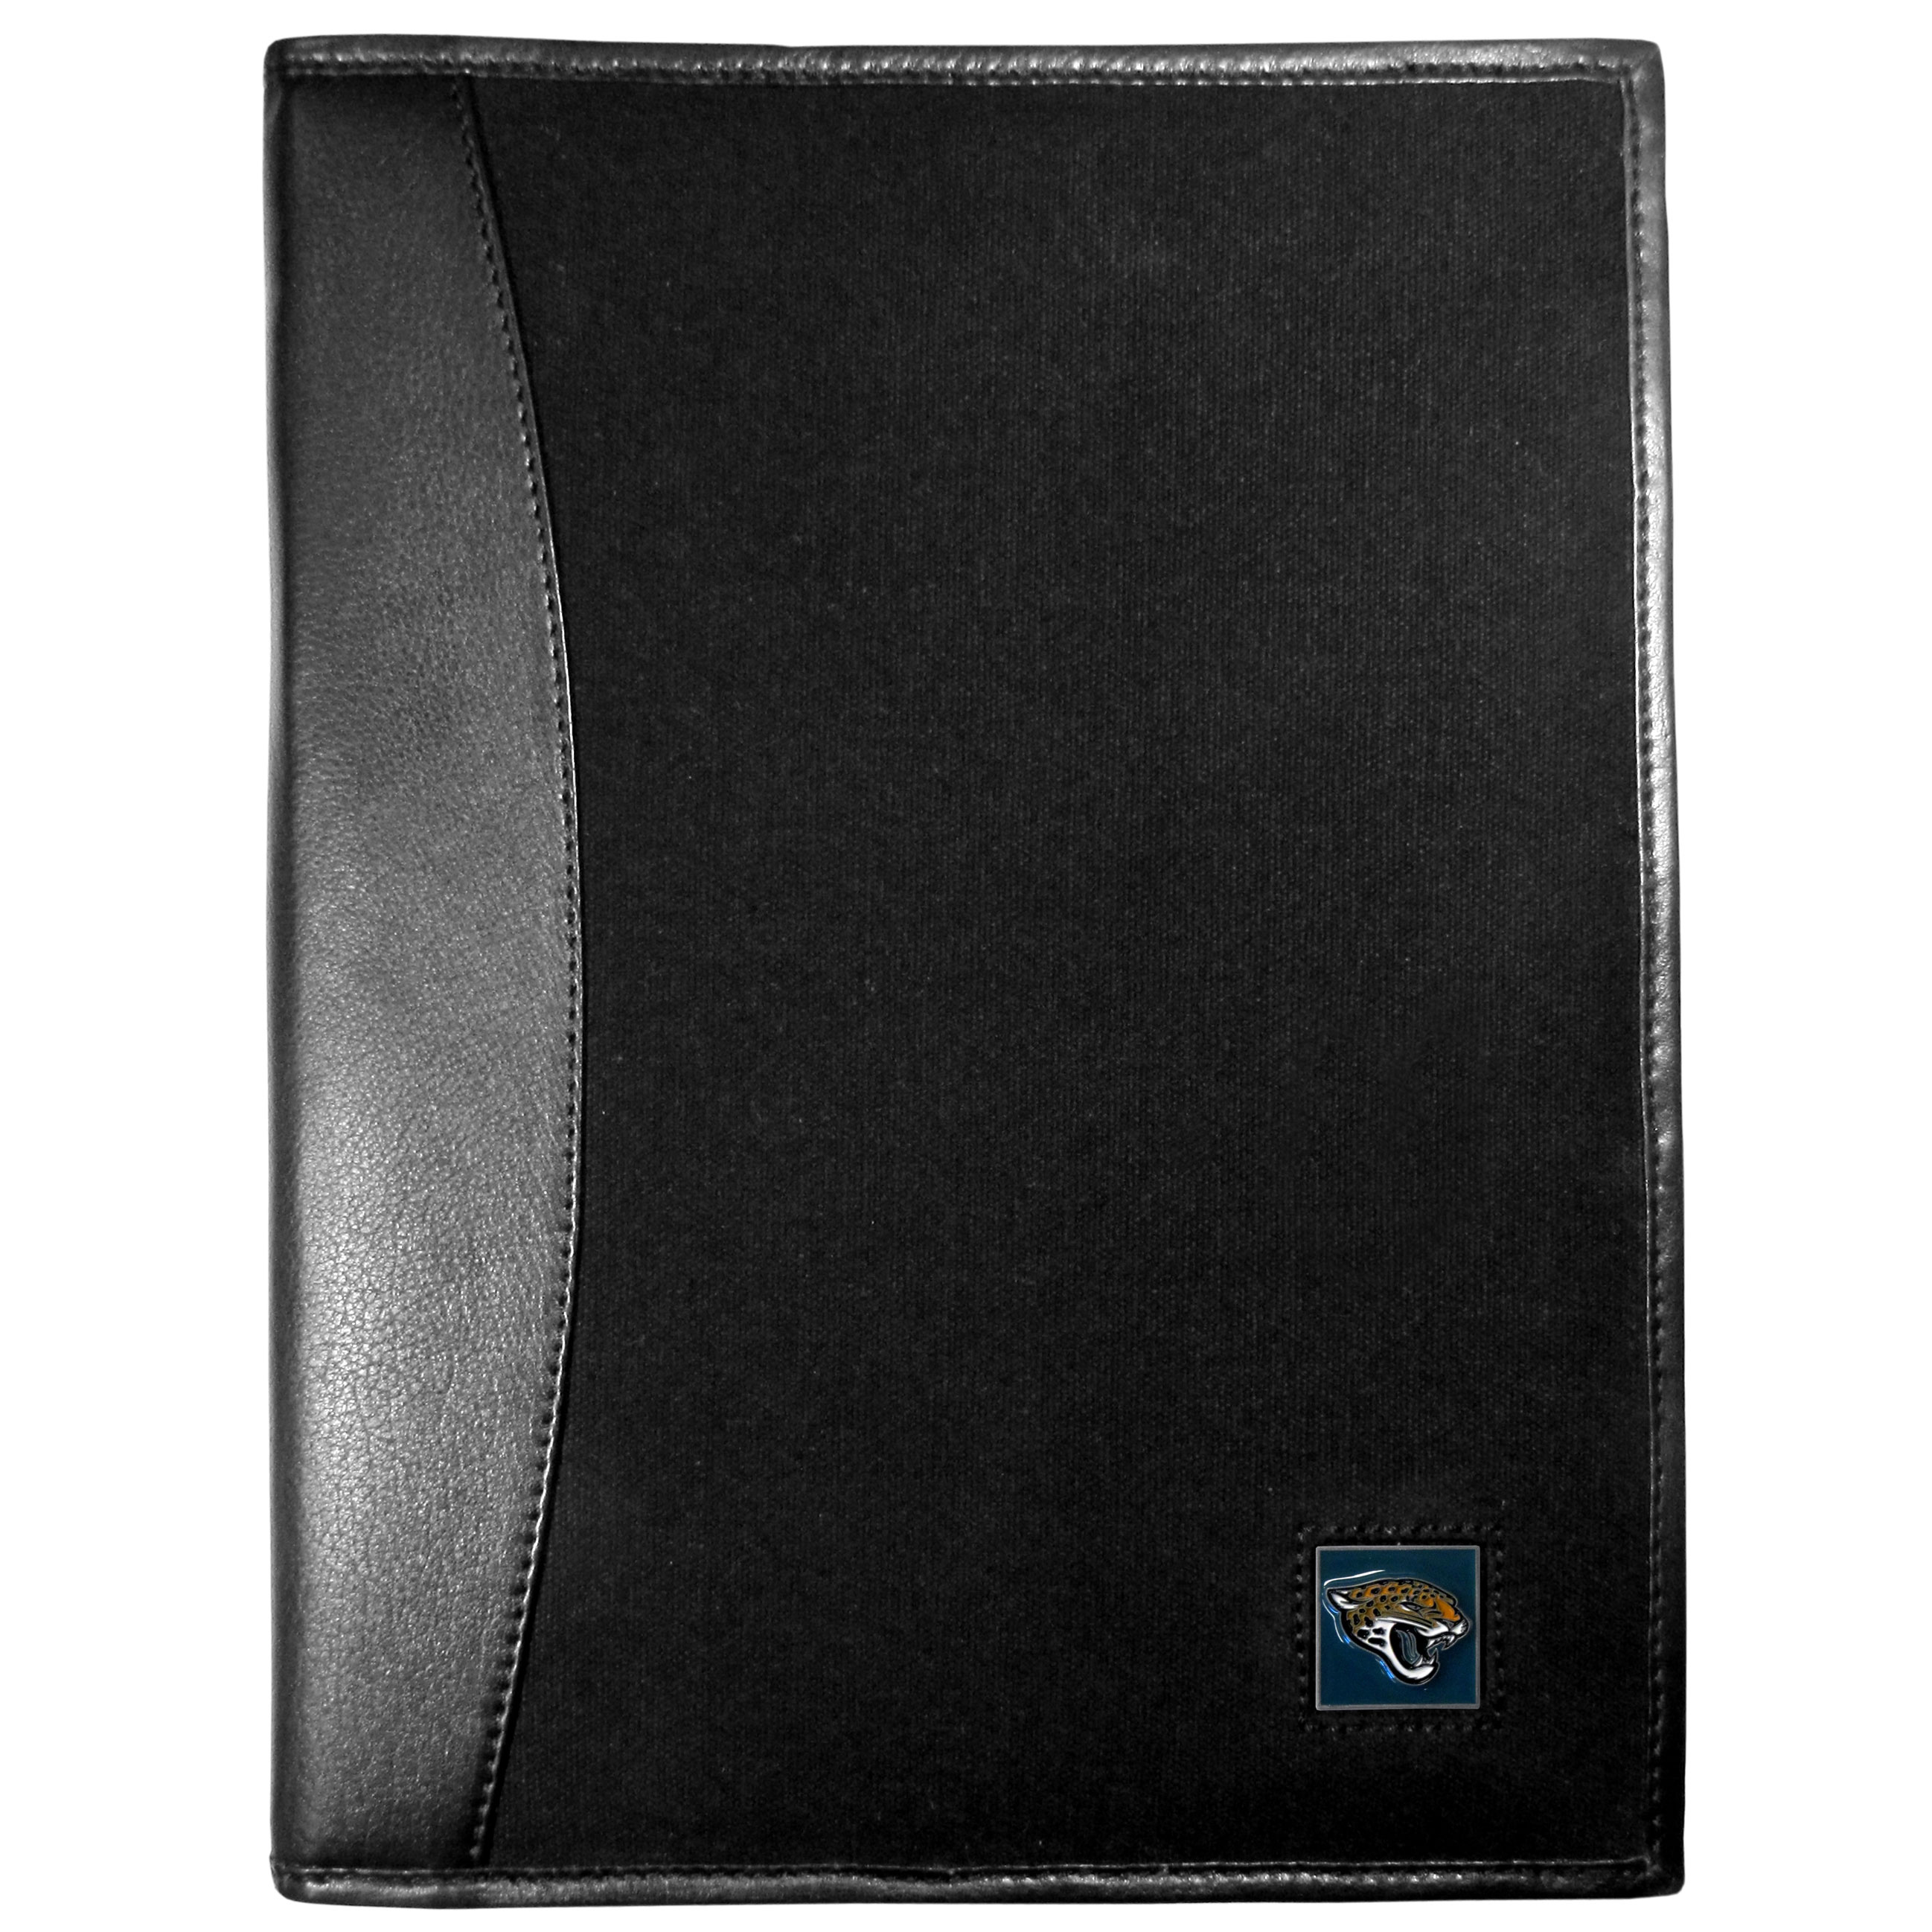 Jacksonville Jaguars Leather and Canvas Padfolio - Our leather and canvas padfolio perfectly blends form and function. The attractive portfolio is bound in fine grain leather with an attractive canvas finish and the interior is a soft nylon. This high quality business accessory also features a fully cast metal Jacksonville Jaguars emblem that is subtly set in the corner of the organizer. It is packed with features like 6 card slots for badges, business cards, hotel keys or credit cards and ID with a large pocket for loose papers and a writing tablet slot making it a must-have for the professional on the go.